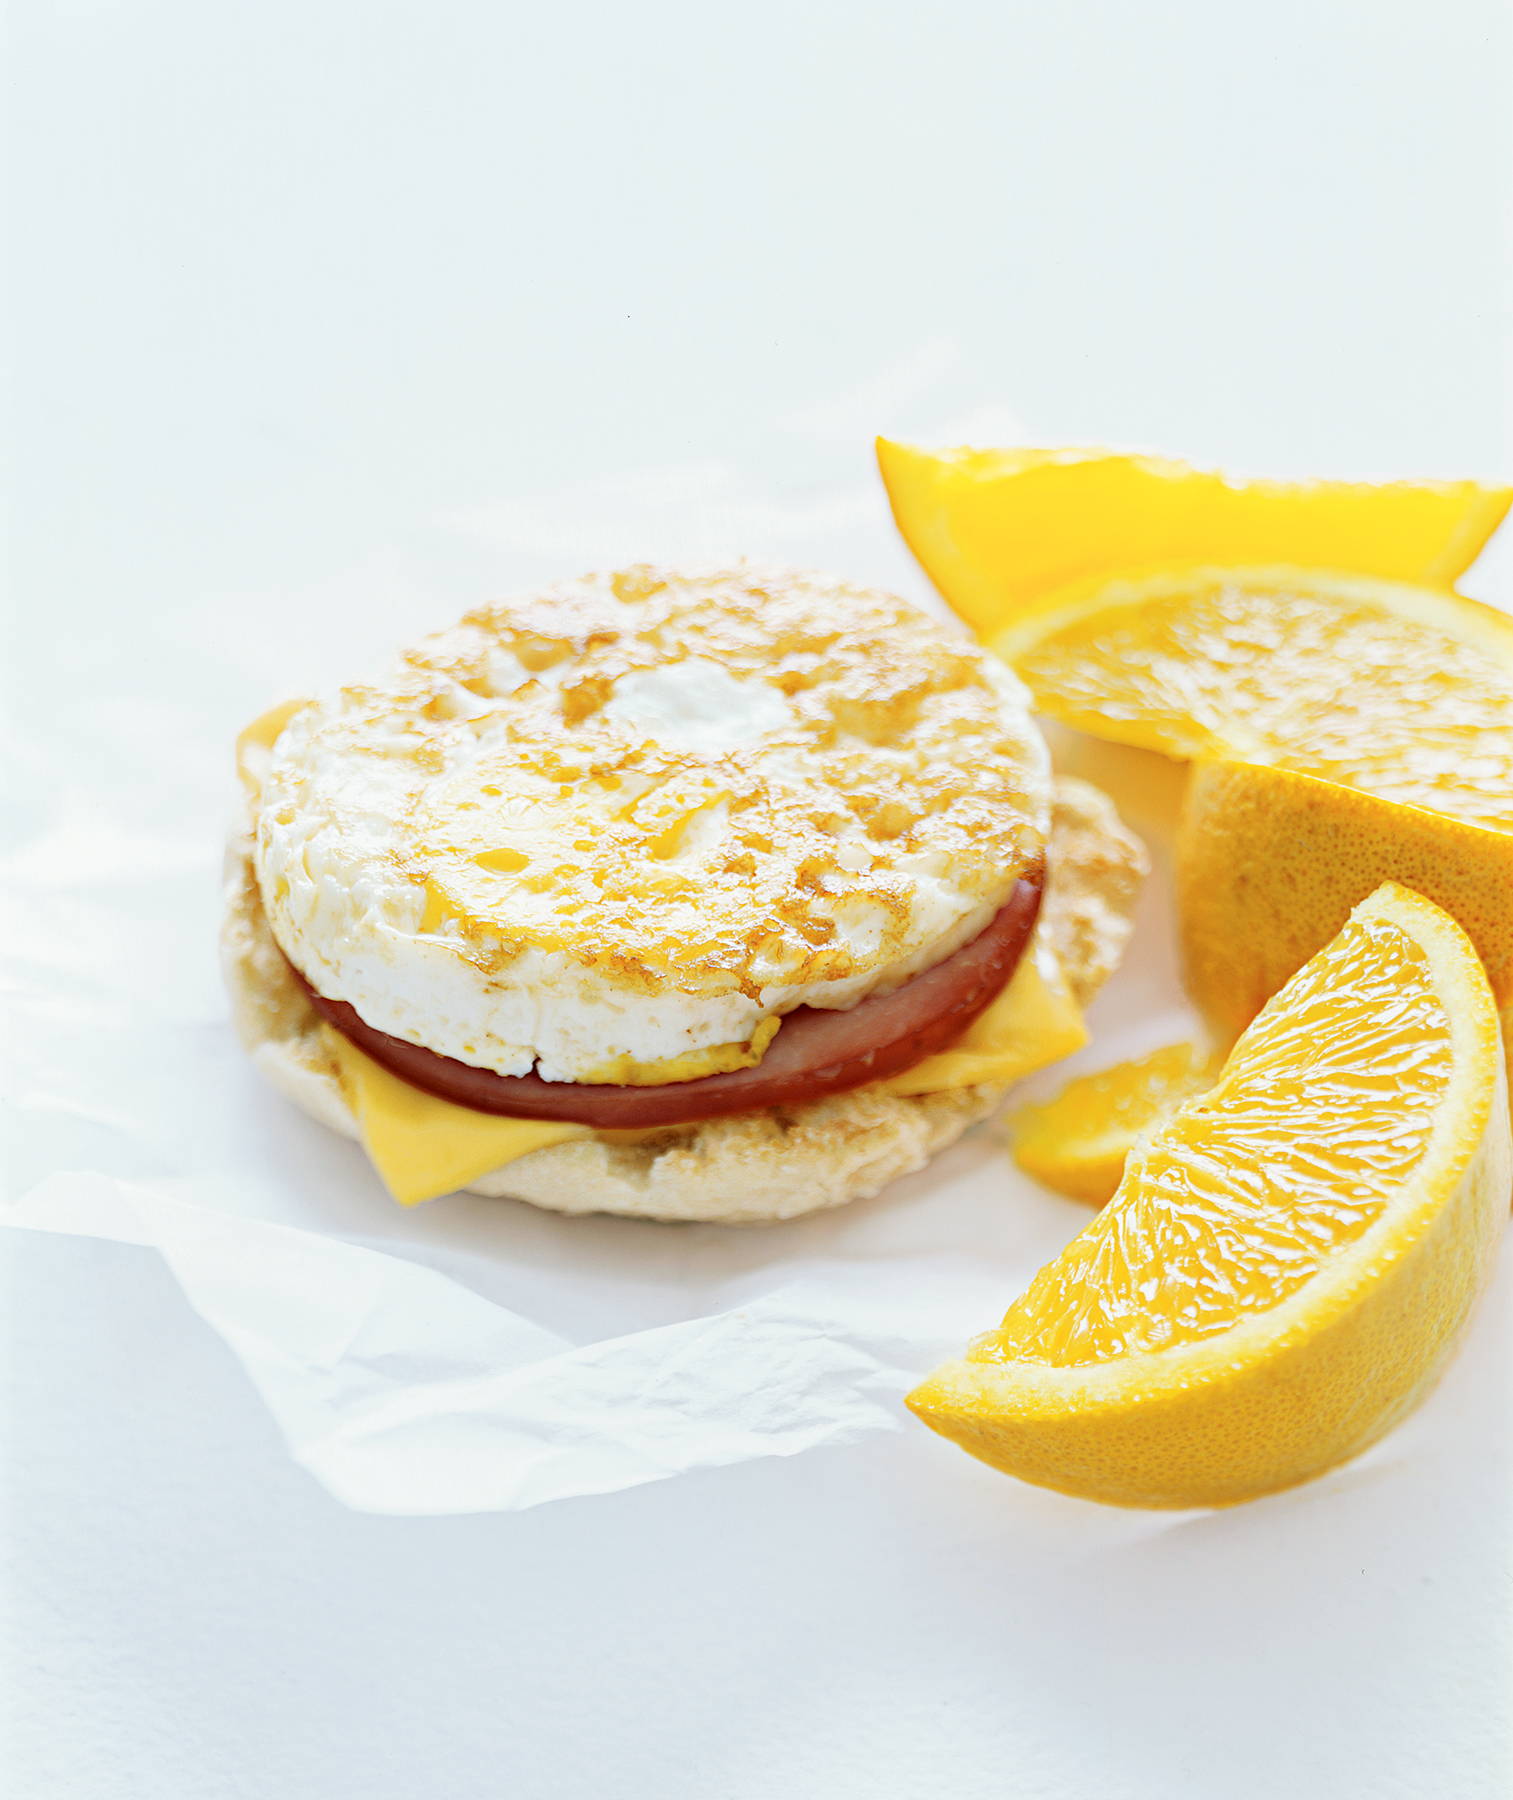 egg mcmuffin and orange